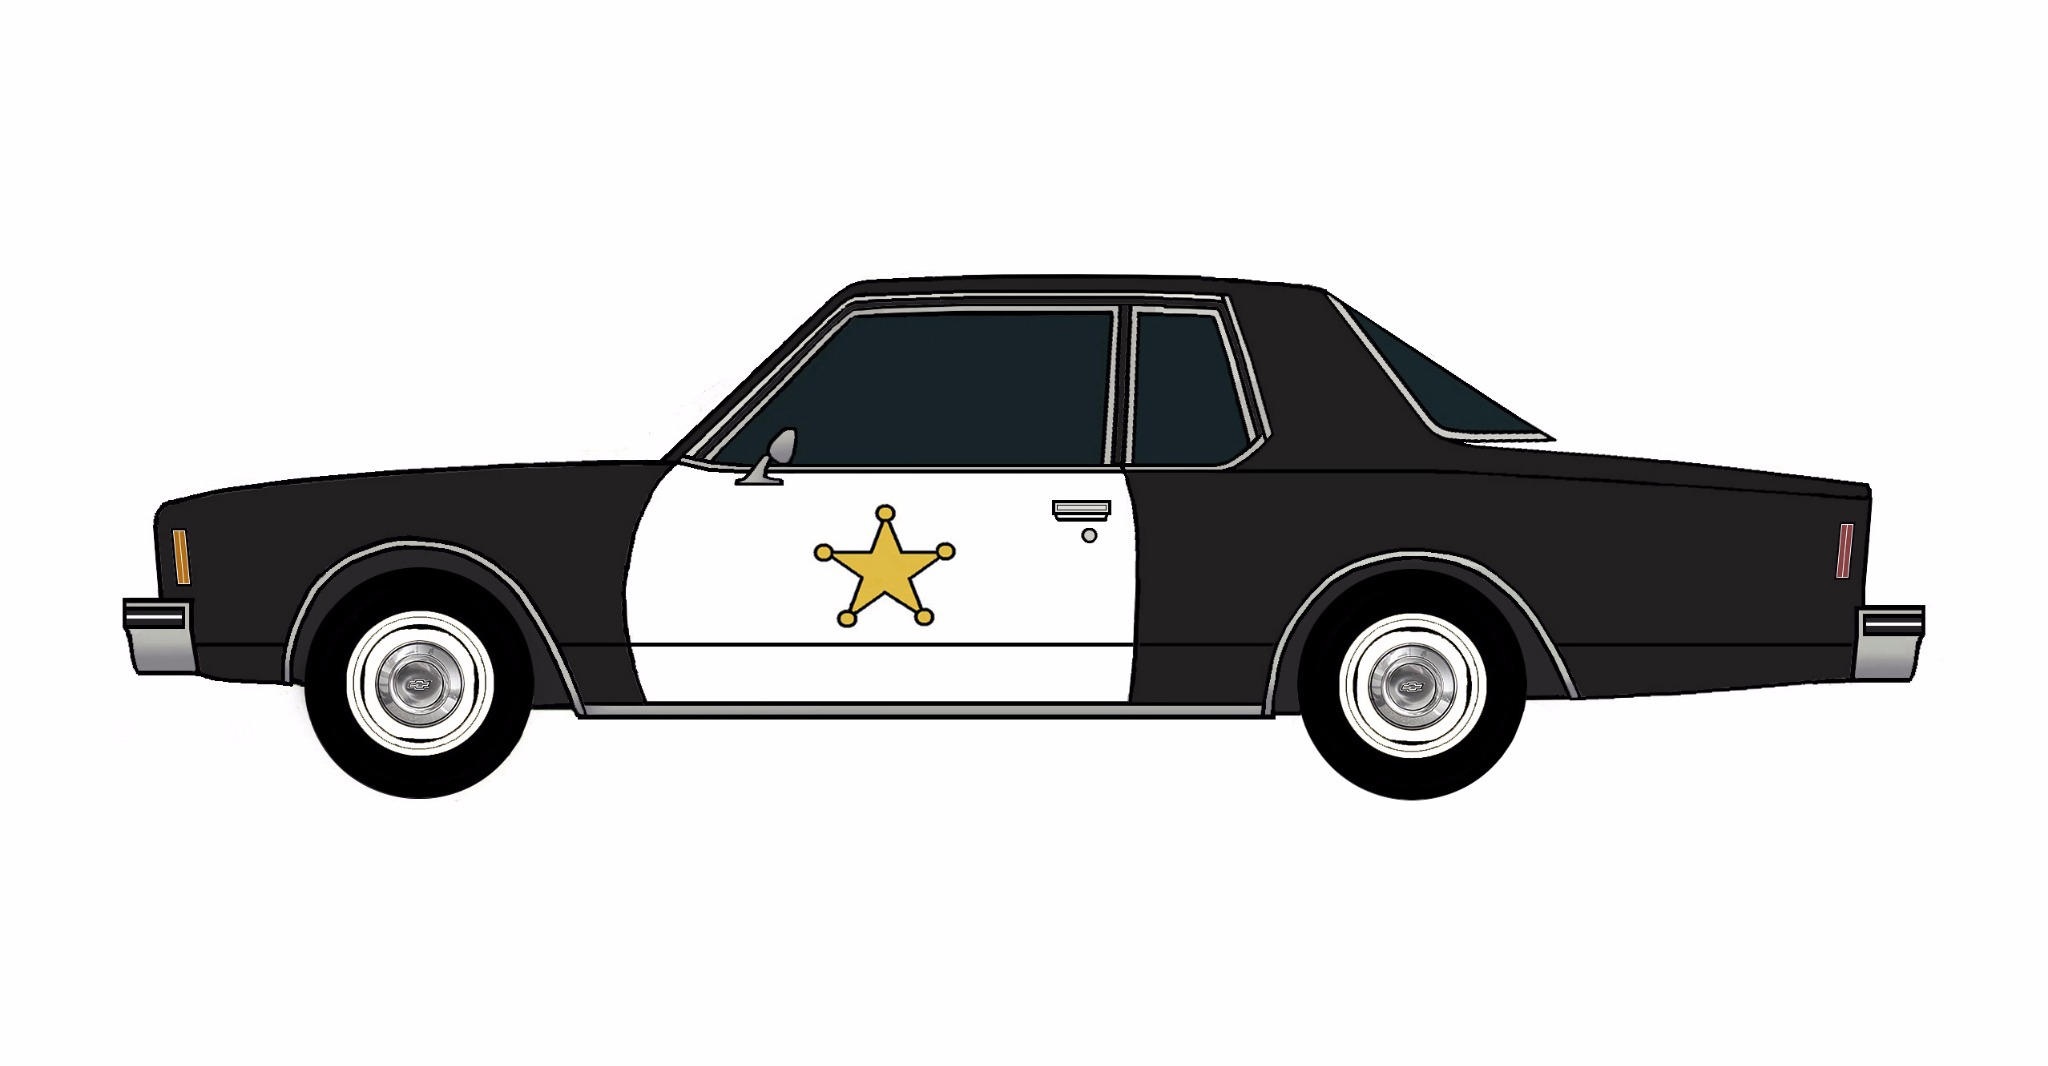 1977 Chevy Impala Police Coupe BLACK